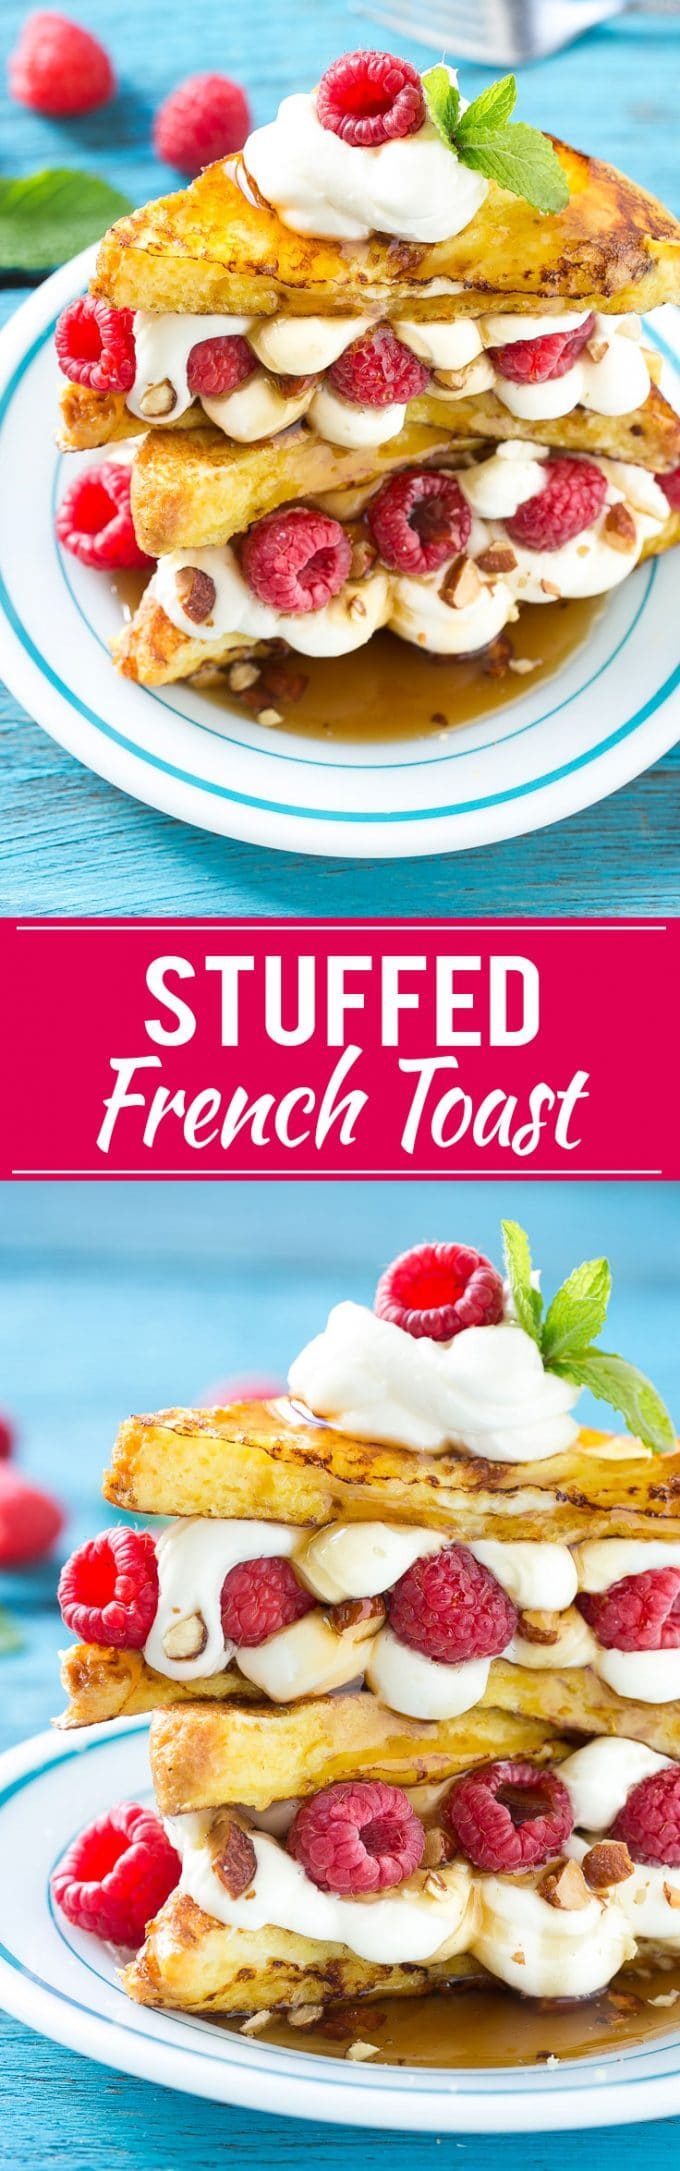 Cream Cheese Stuffed French Toast Recipe | Stuffed French Toast | Best Stuffed French Toast | Best French Toast | Raspberry Cream Cheese Stuffed French Toast